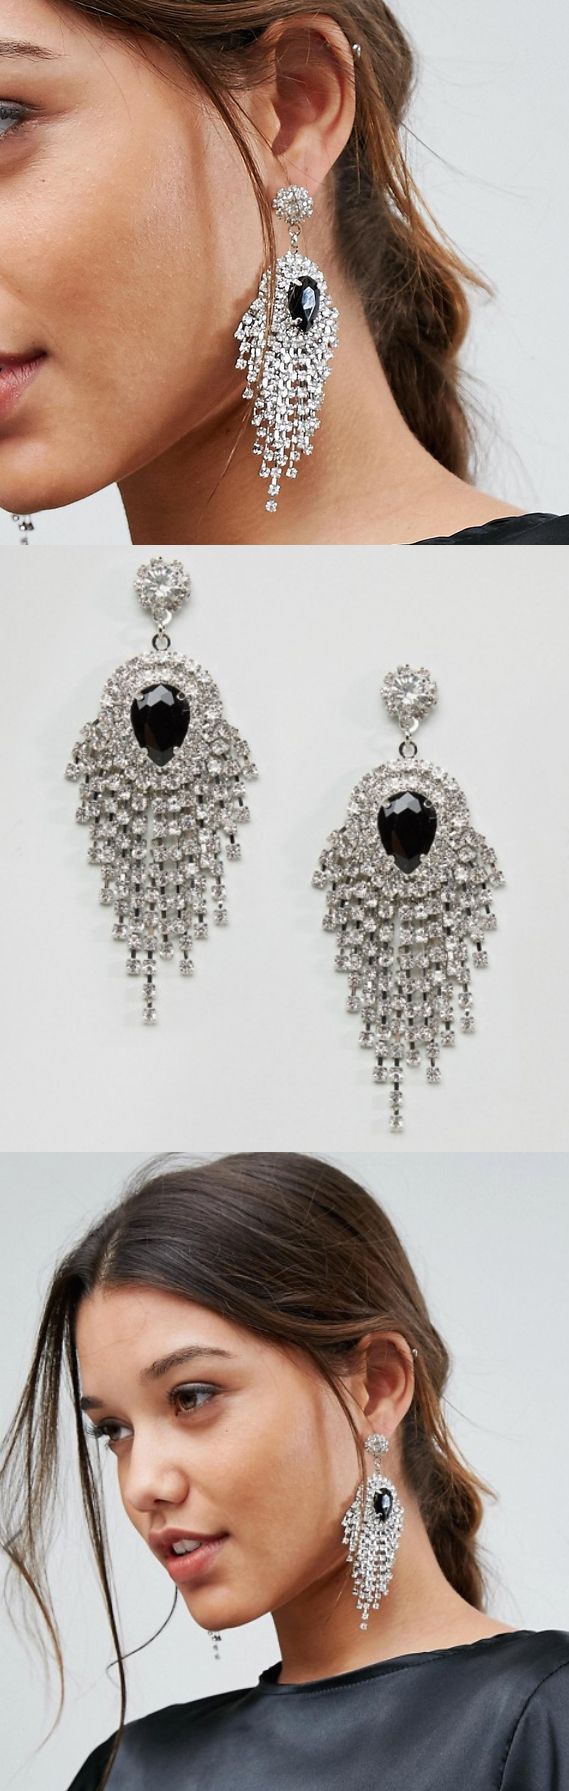 Louise thompson earrings 3500 lioness oversized chandelier louise thompson earrings 3500 lioness oversized chandelier statement earrings art deco feel theme arubaitofo Image collections